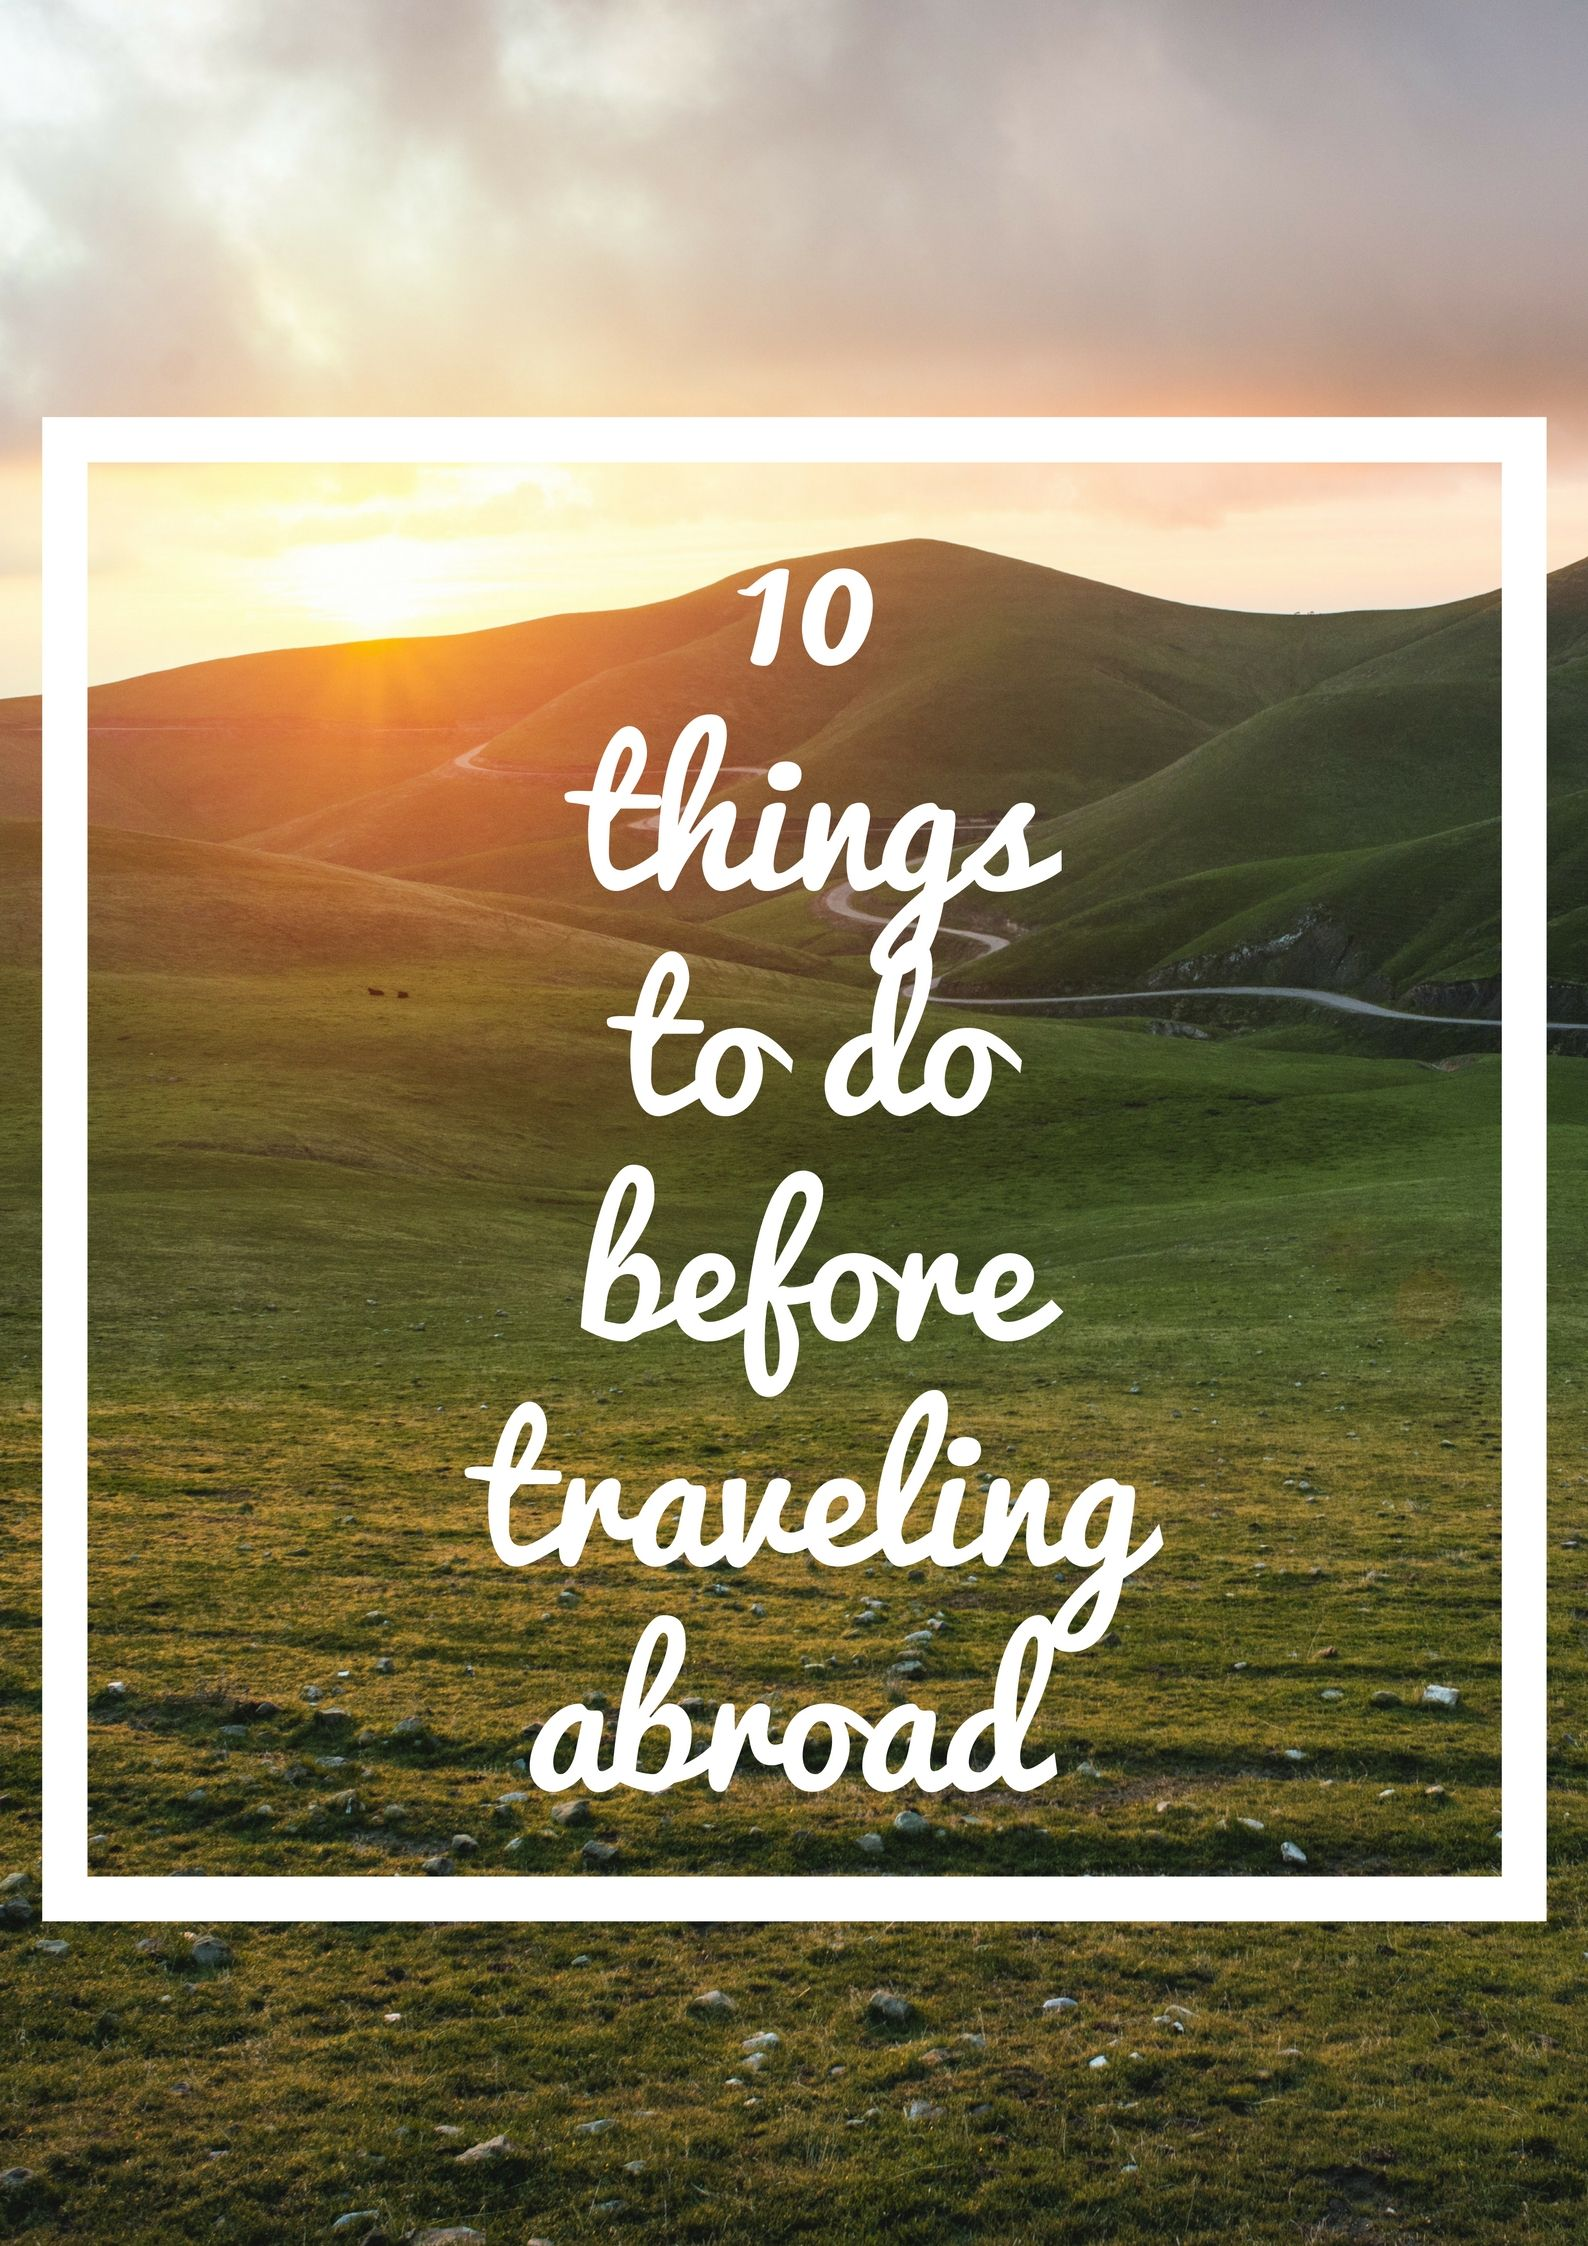 10 very important thing that you might consider doing before travelling abroad